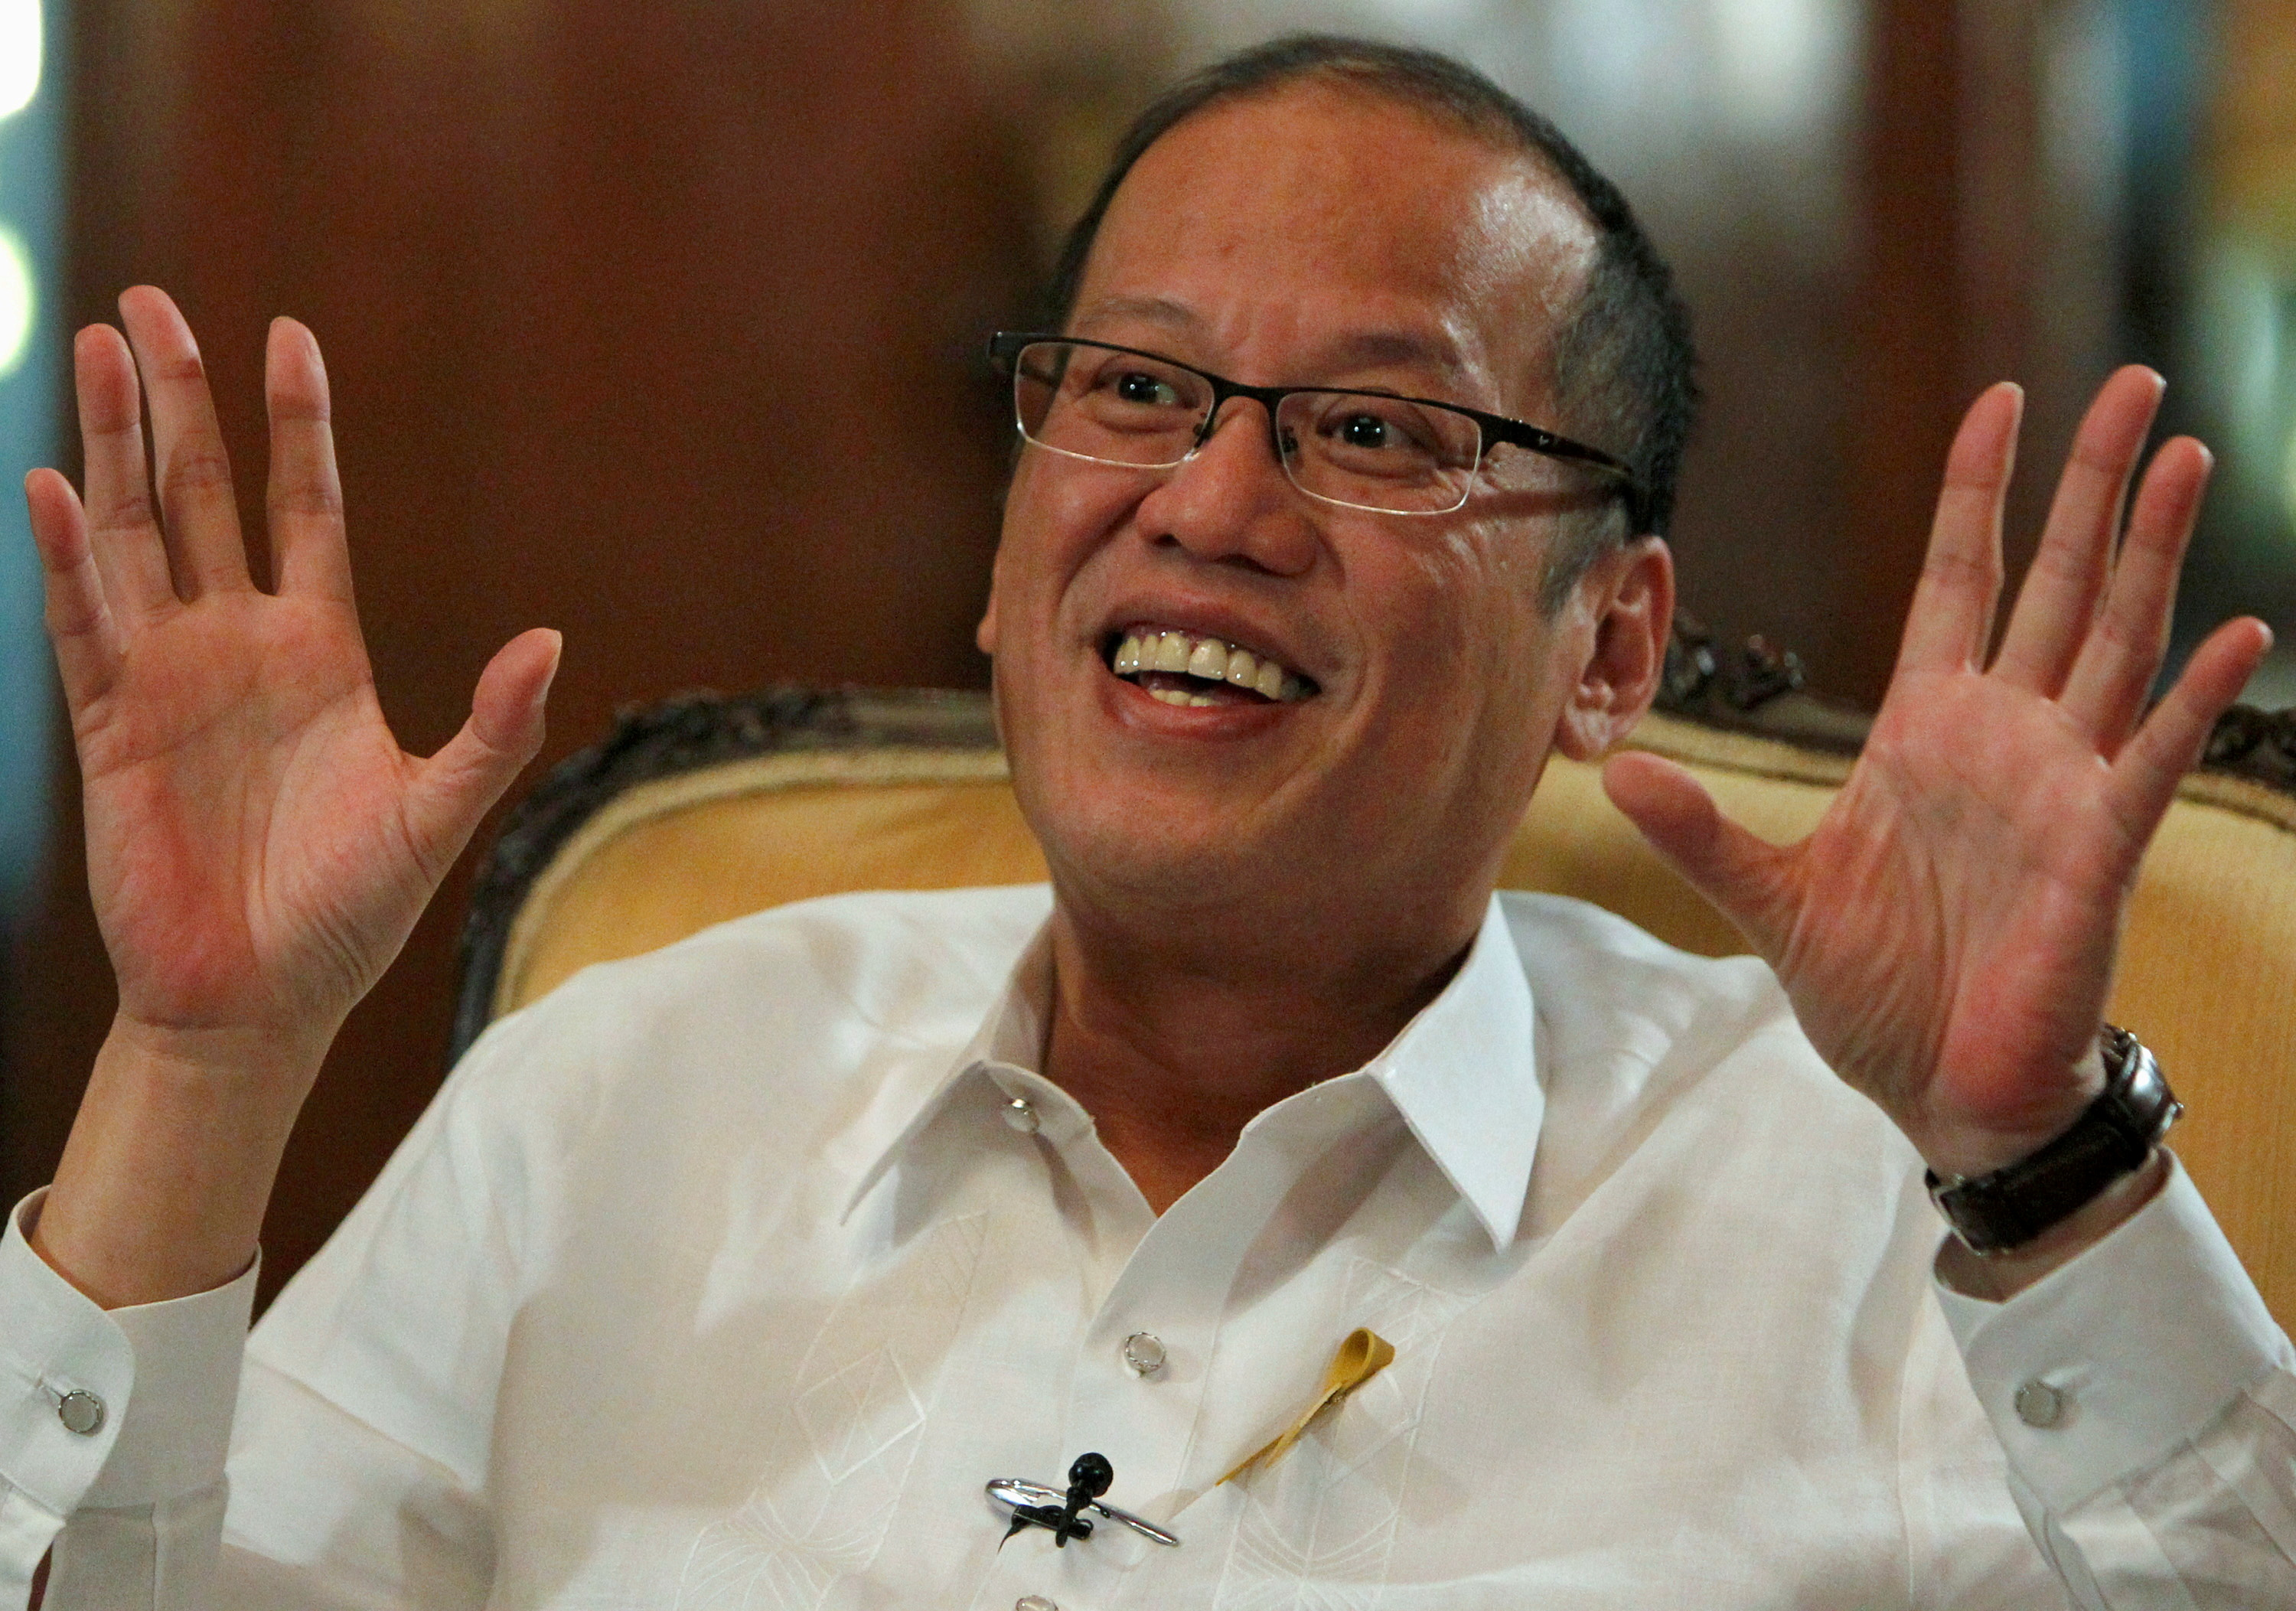 FILE PHOTO - Philippine President Benigno Aquino gestures during an interview with Reuters at the Malacanang presidential palace in Manila July 2, 2012.  REUTERS/Erik De Castro/File Picture